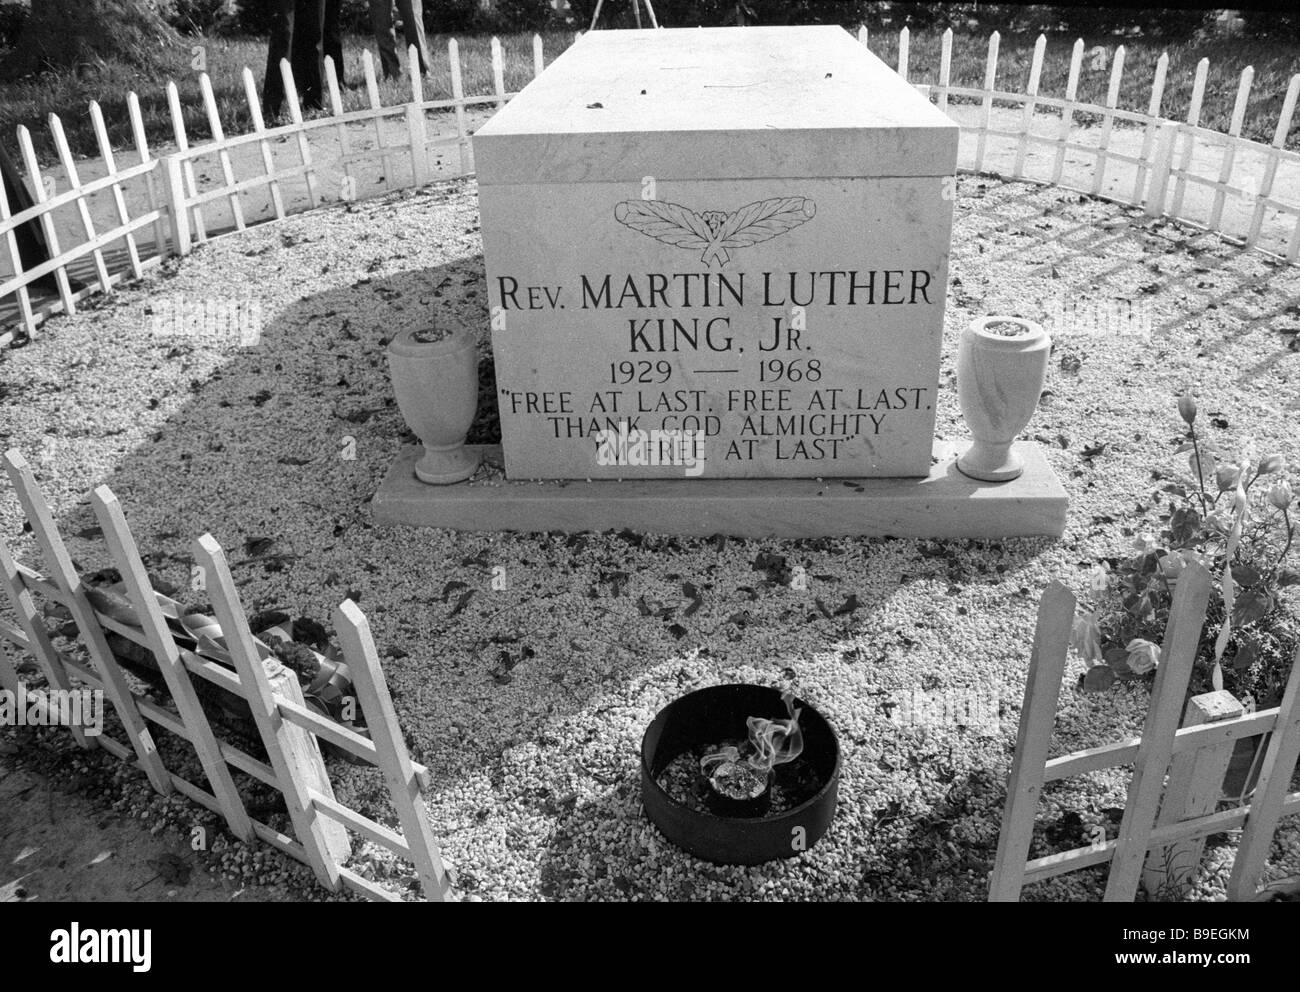 king grave stock photos king grave stock images alamy rh alamy com Martin Luther King Jr Killer Martin Luther King Jr Killer